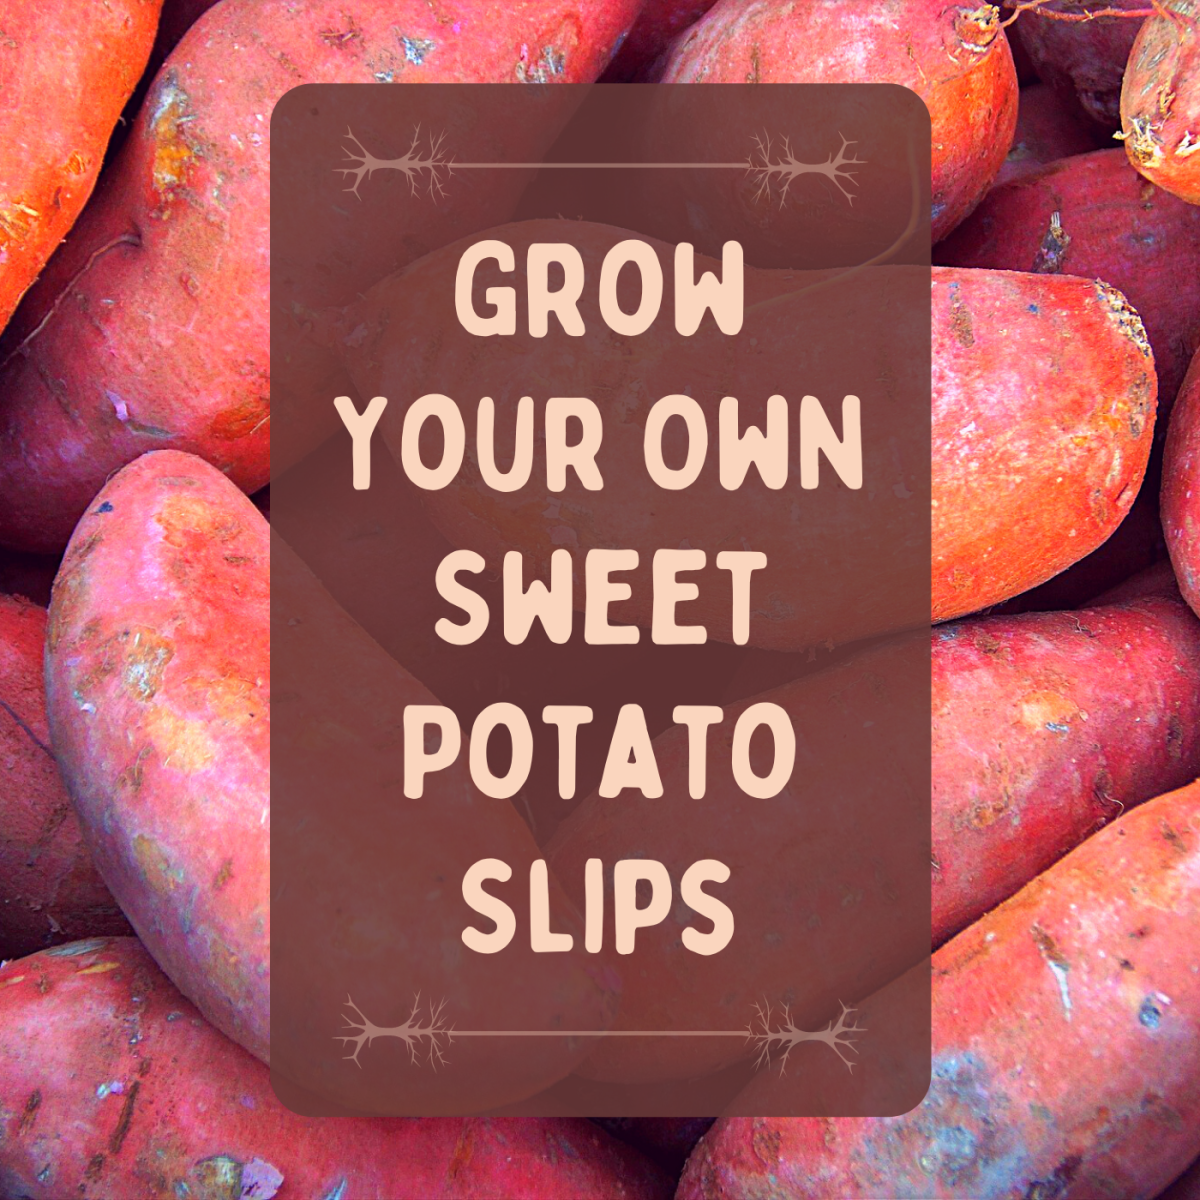 Learn how to grow sweet potatoes from slips you create yourself.